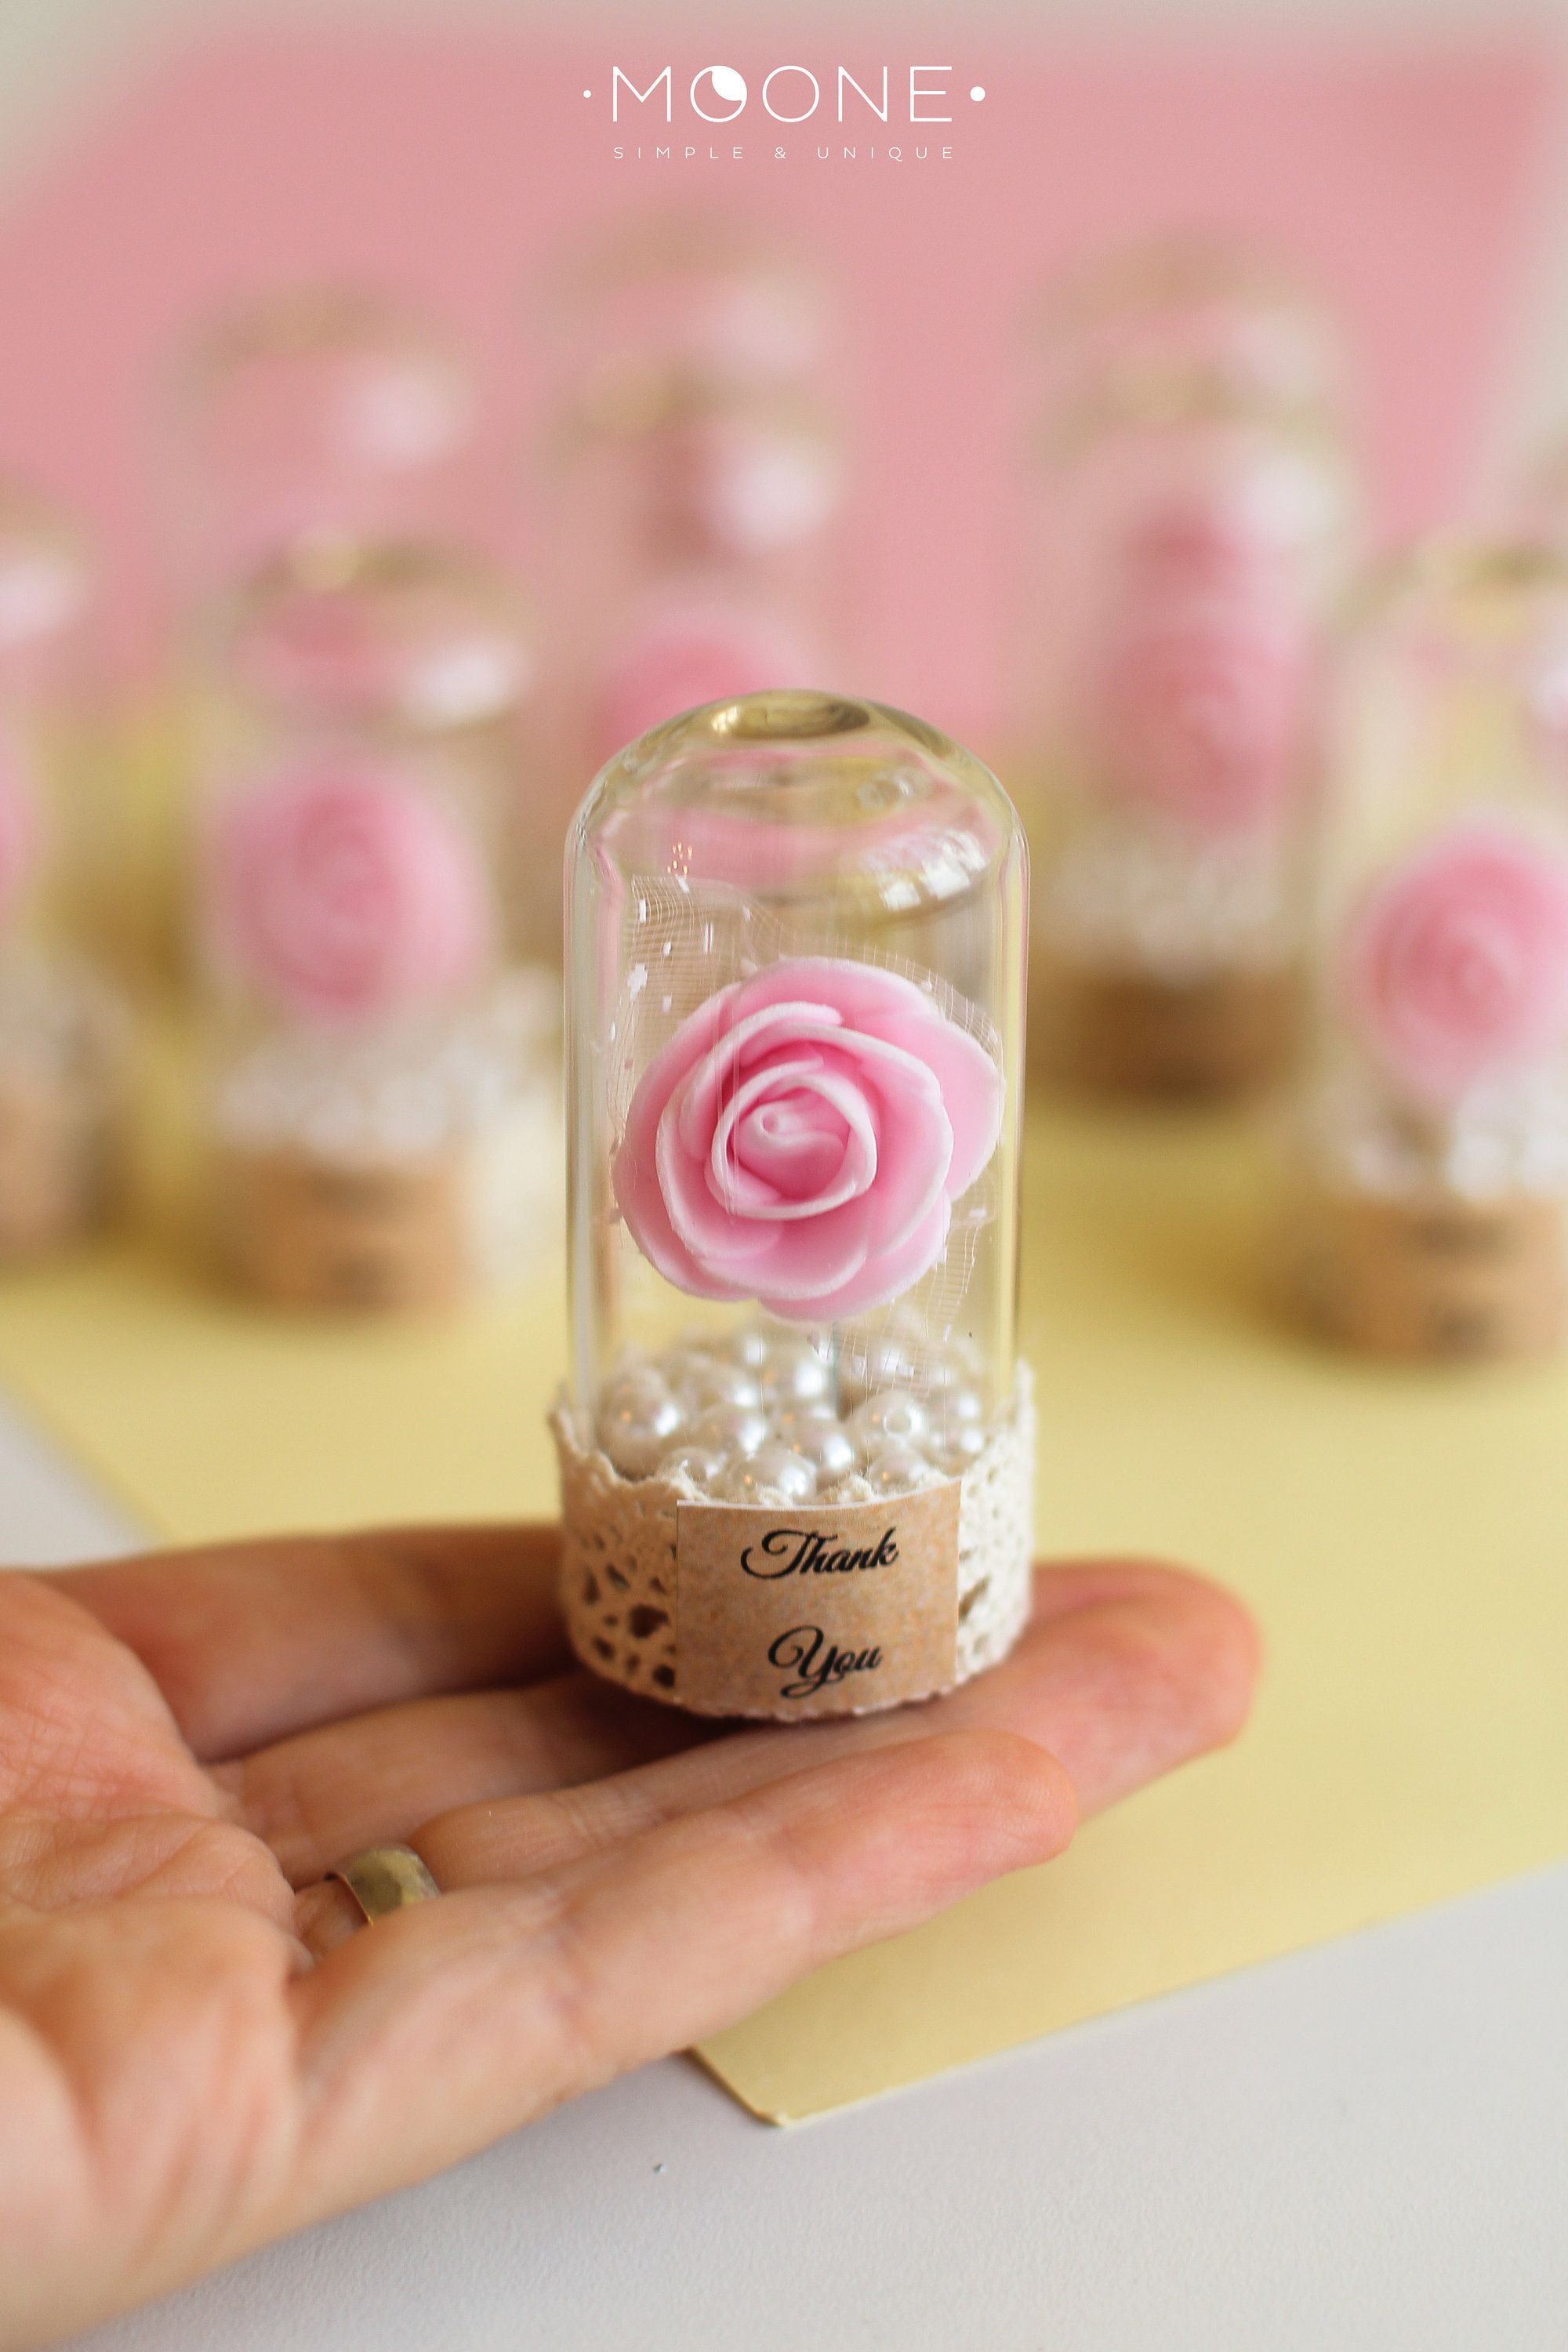 10pcs Rose Dome Favors Beauty And The Beast Wedding Favors Etsy In 2020 Wedding Favors For Guests Bridal Shower Party Favors Rose Dome